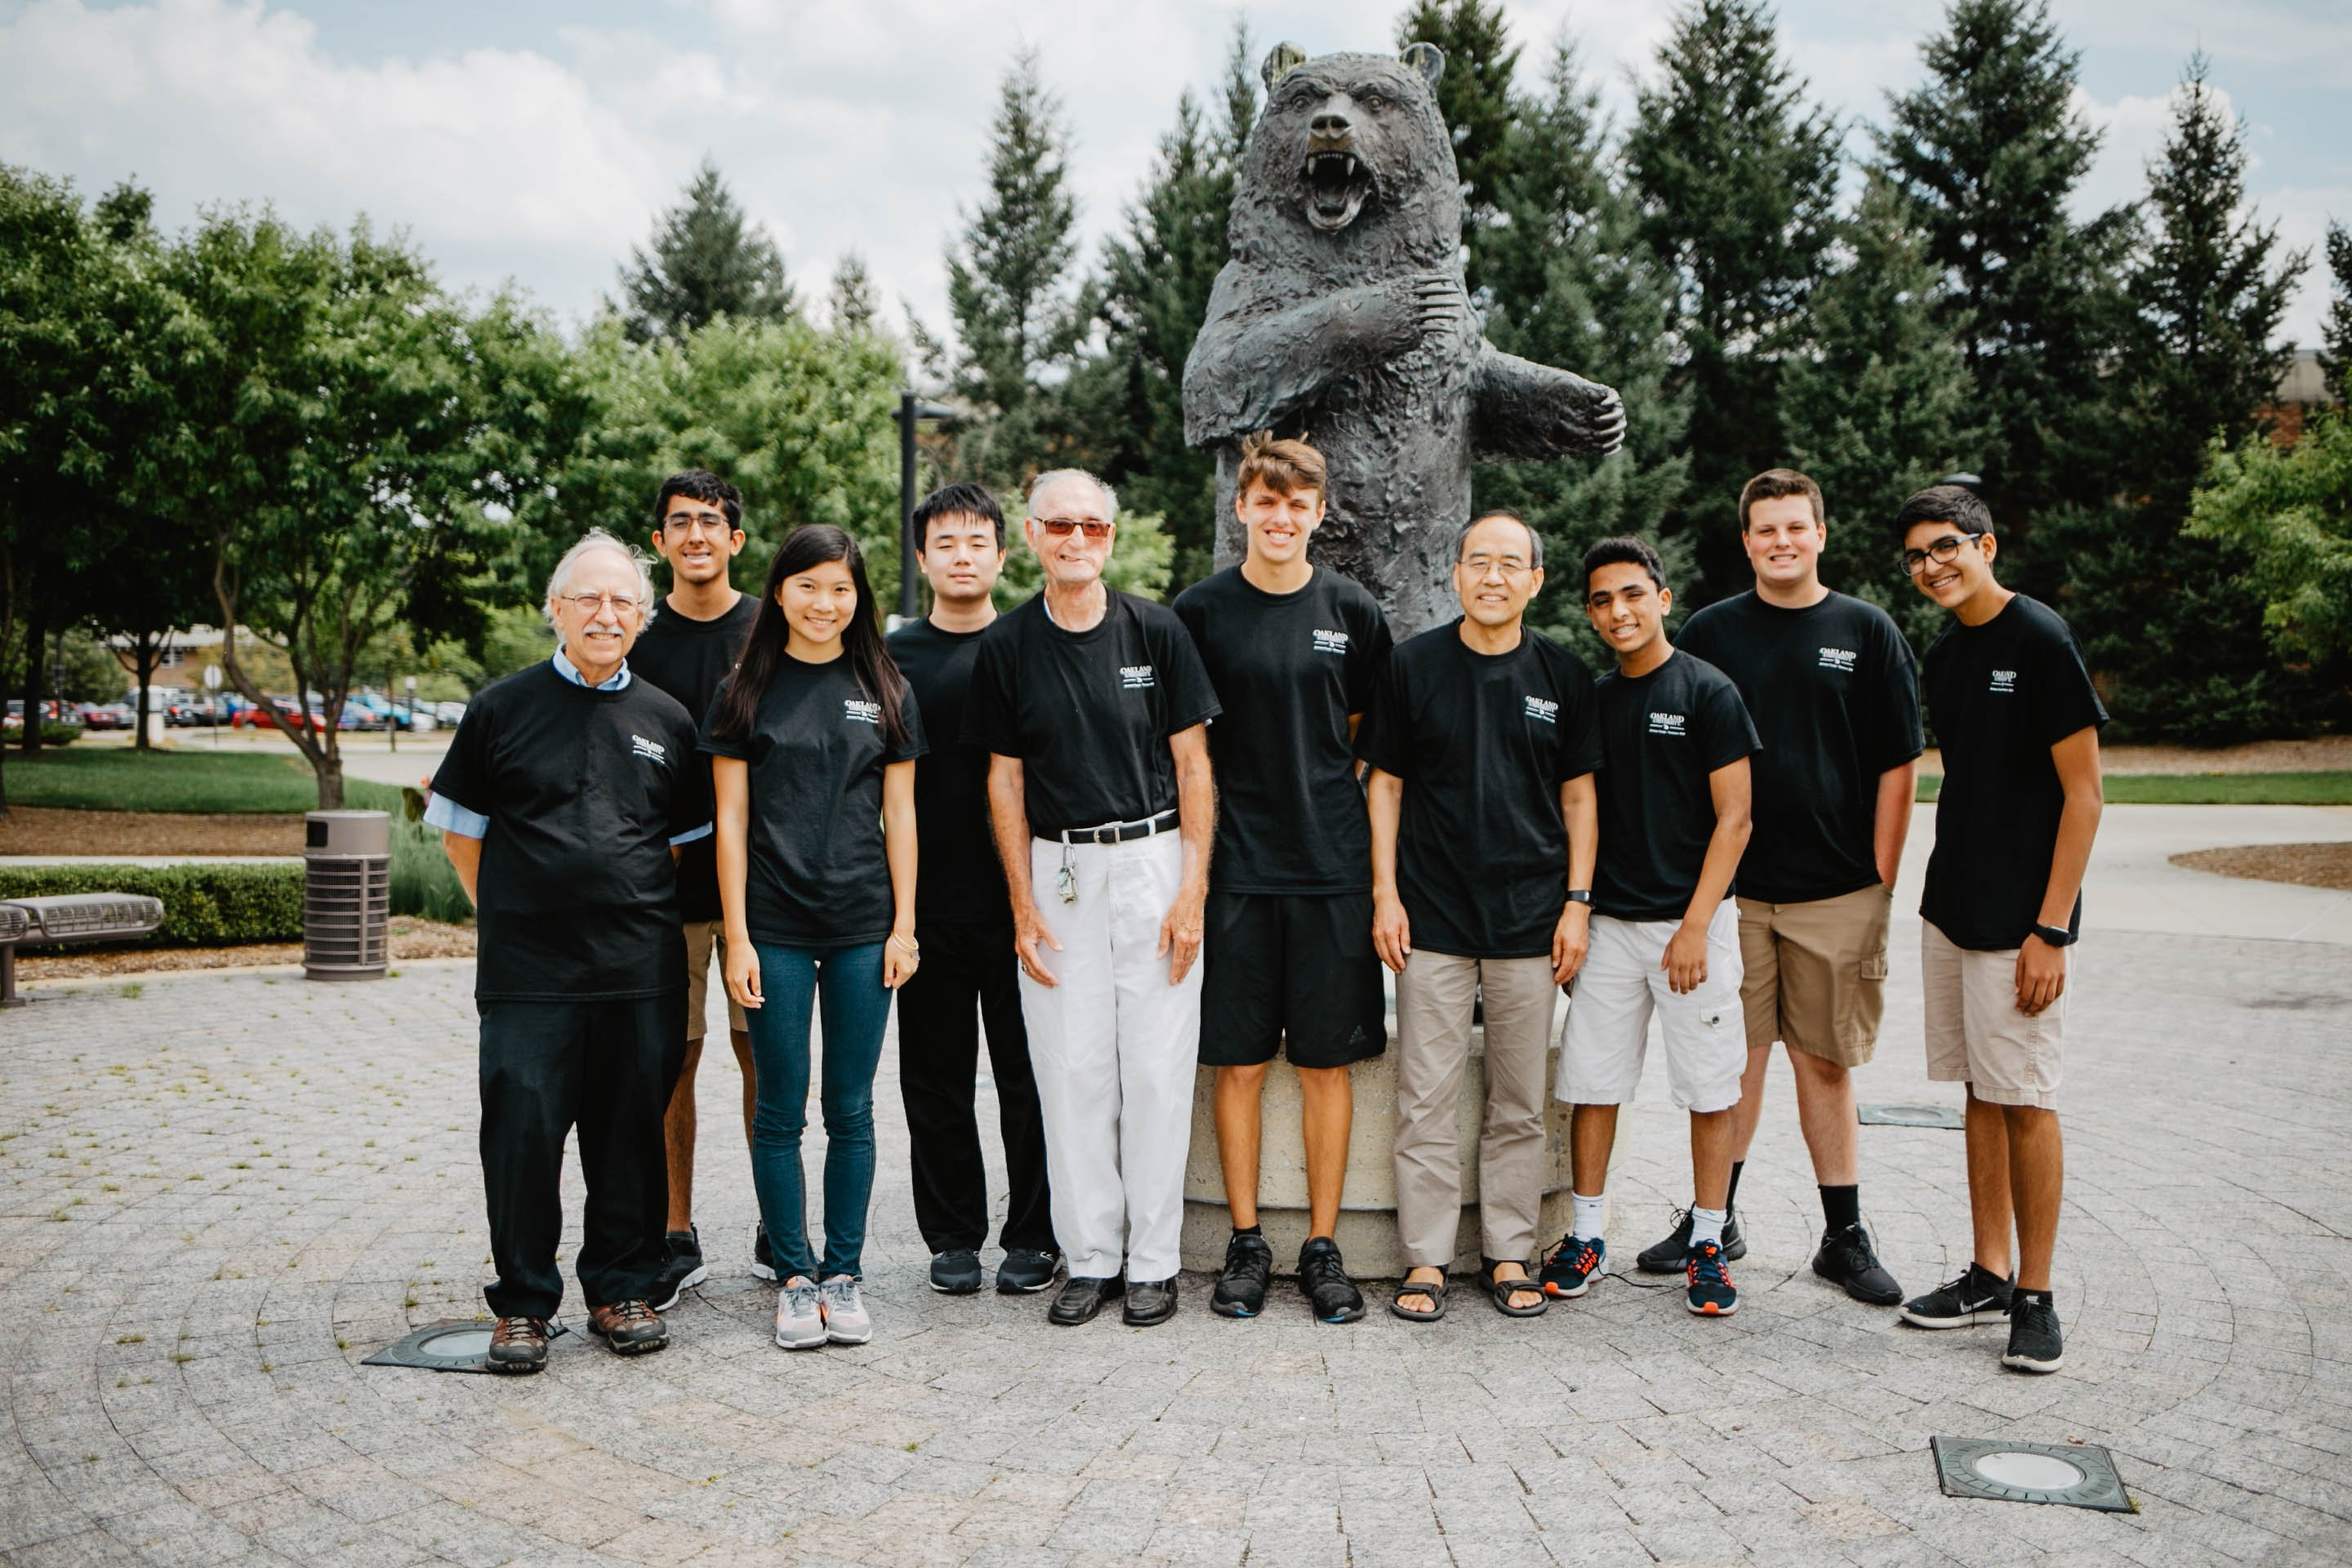 Group of Actuarial Science campers with leaders in front of Grizz statue.